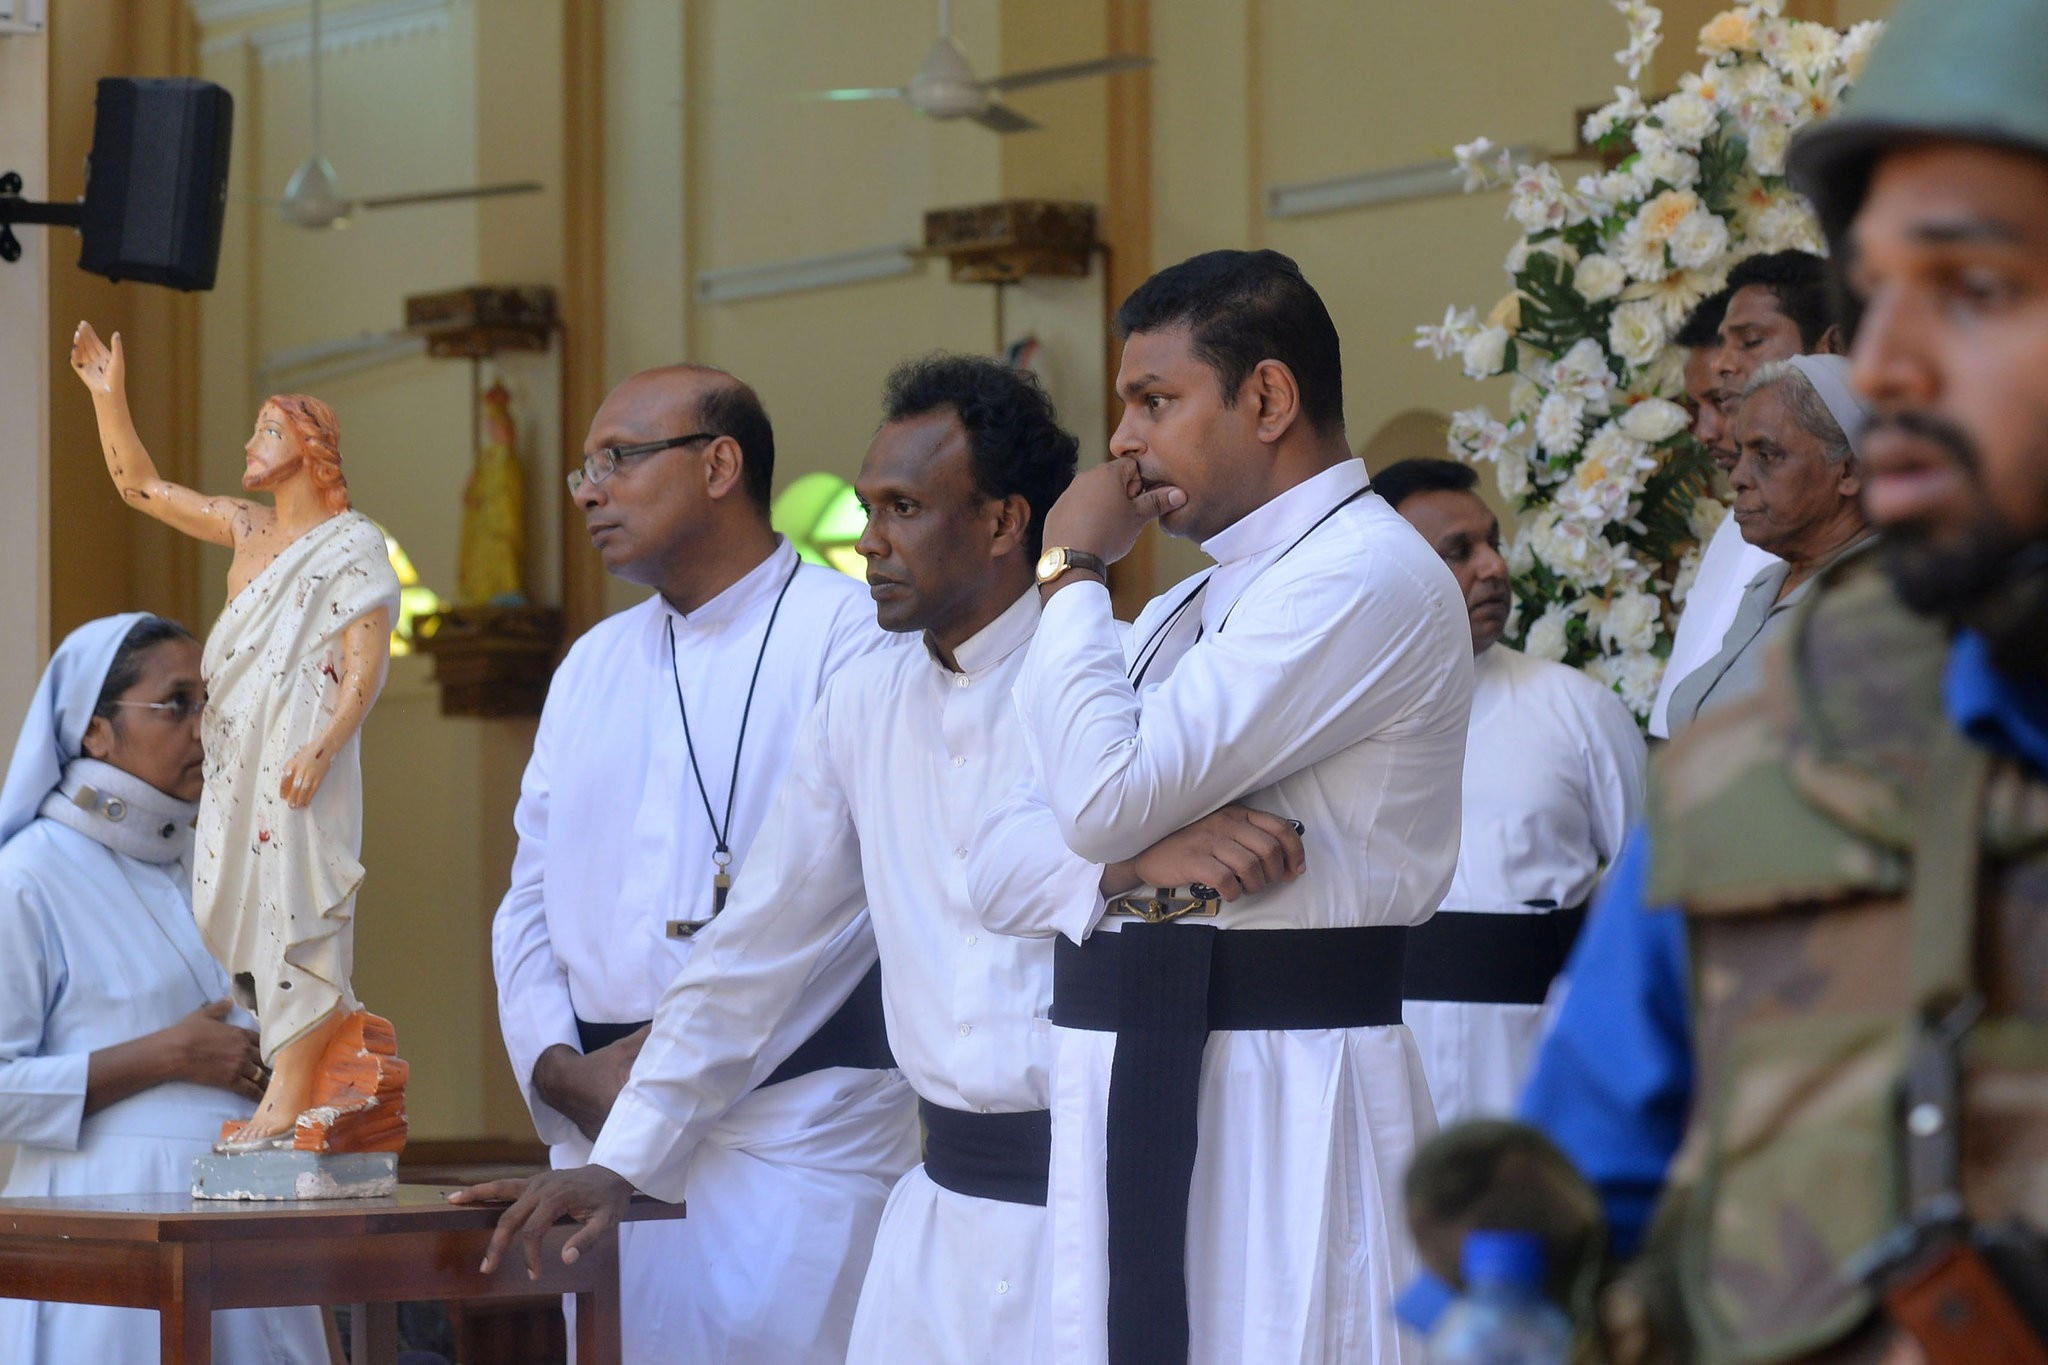 Catholic priests and nuns in Sri Lanka after the attack.